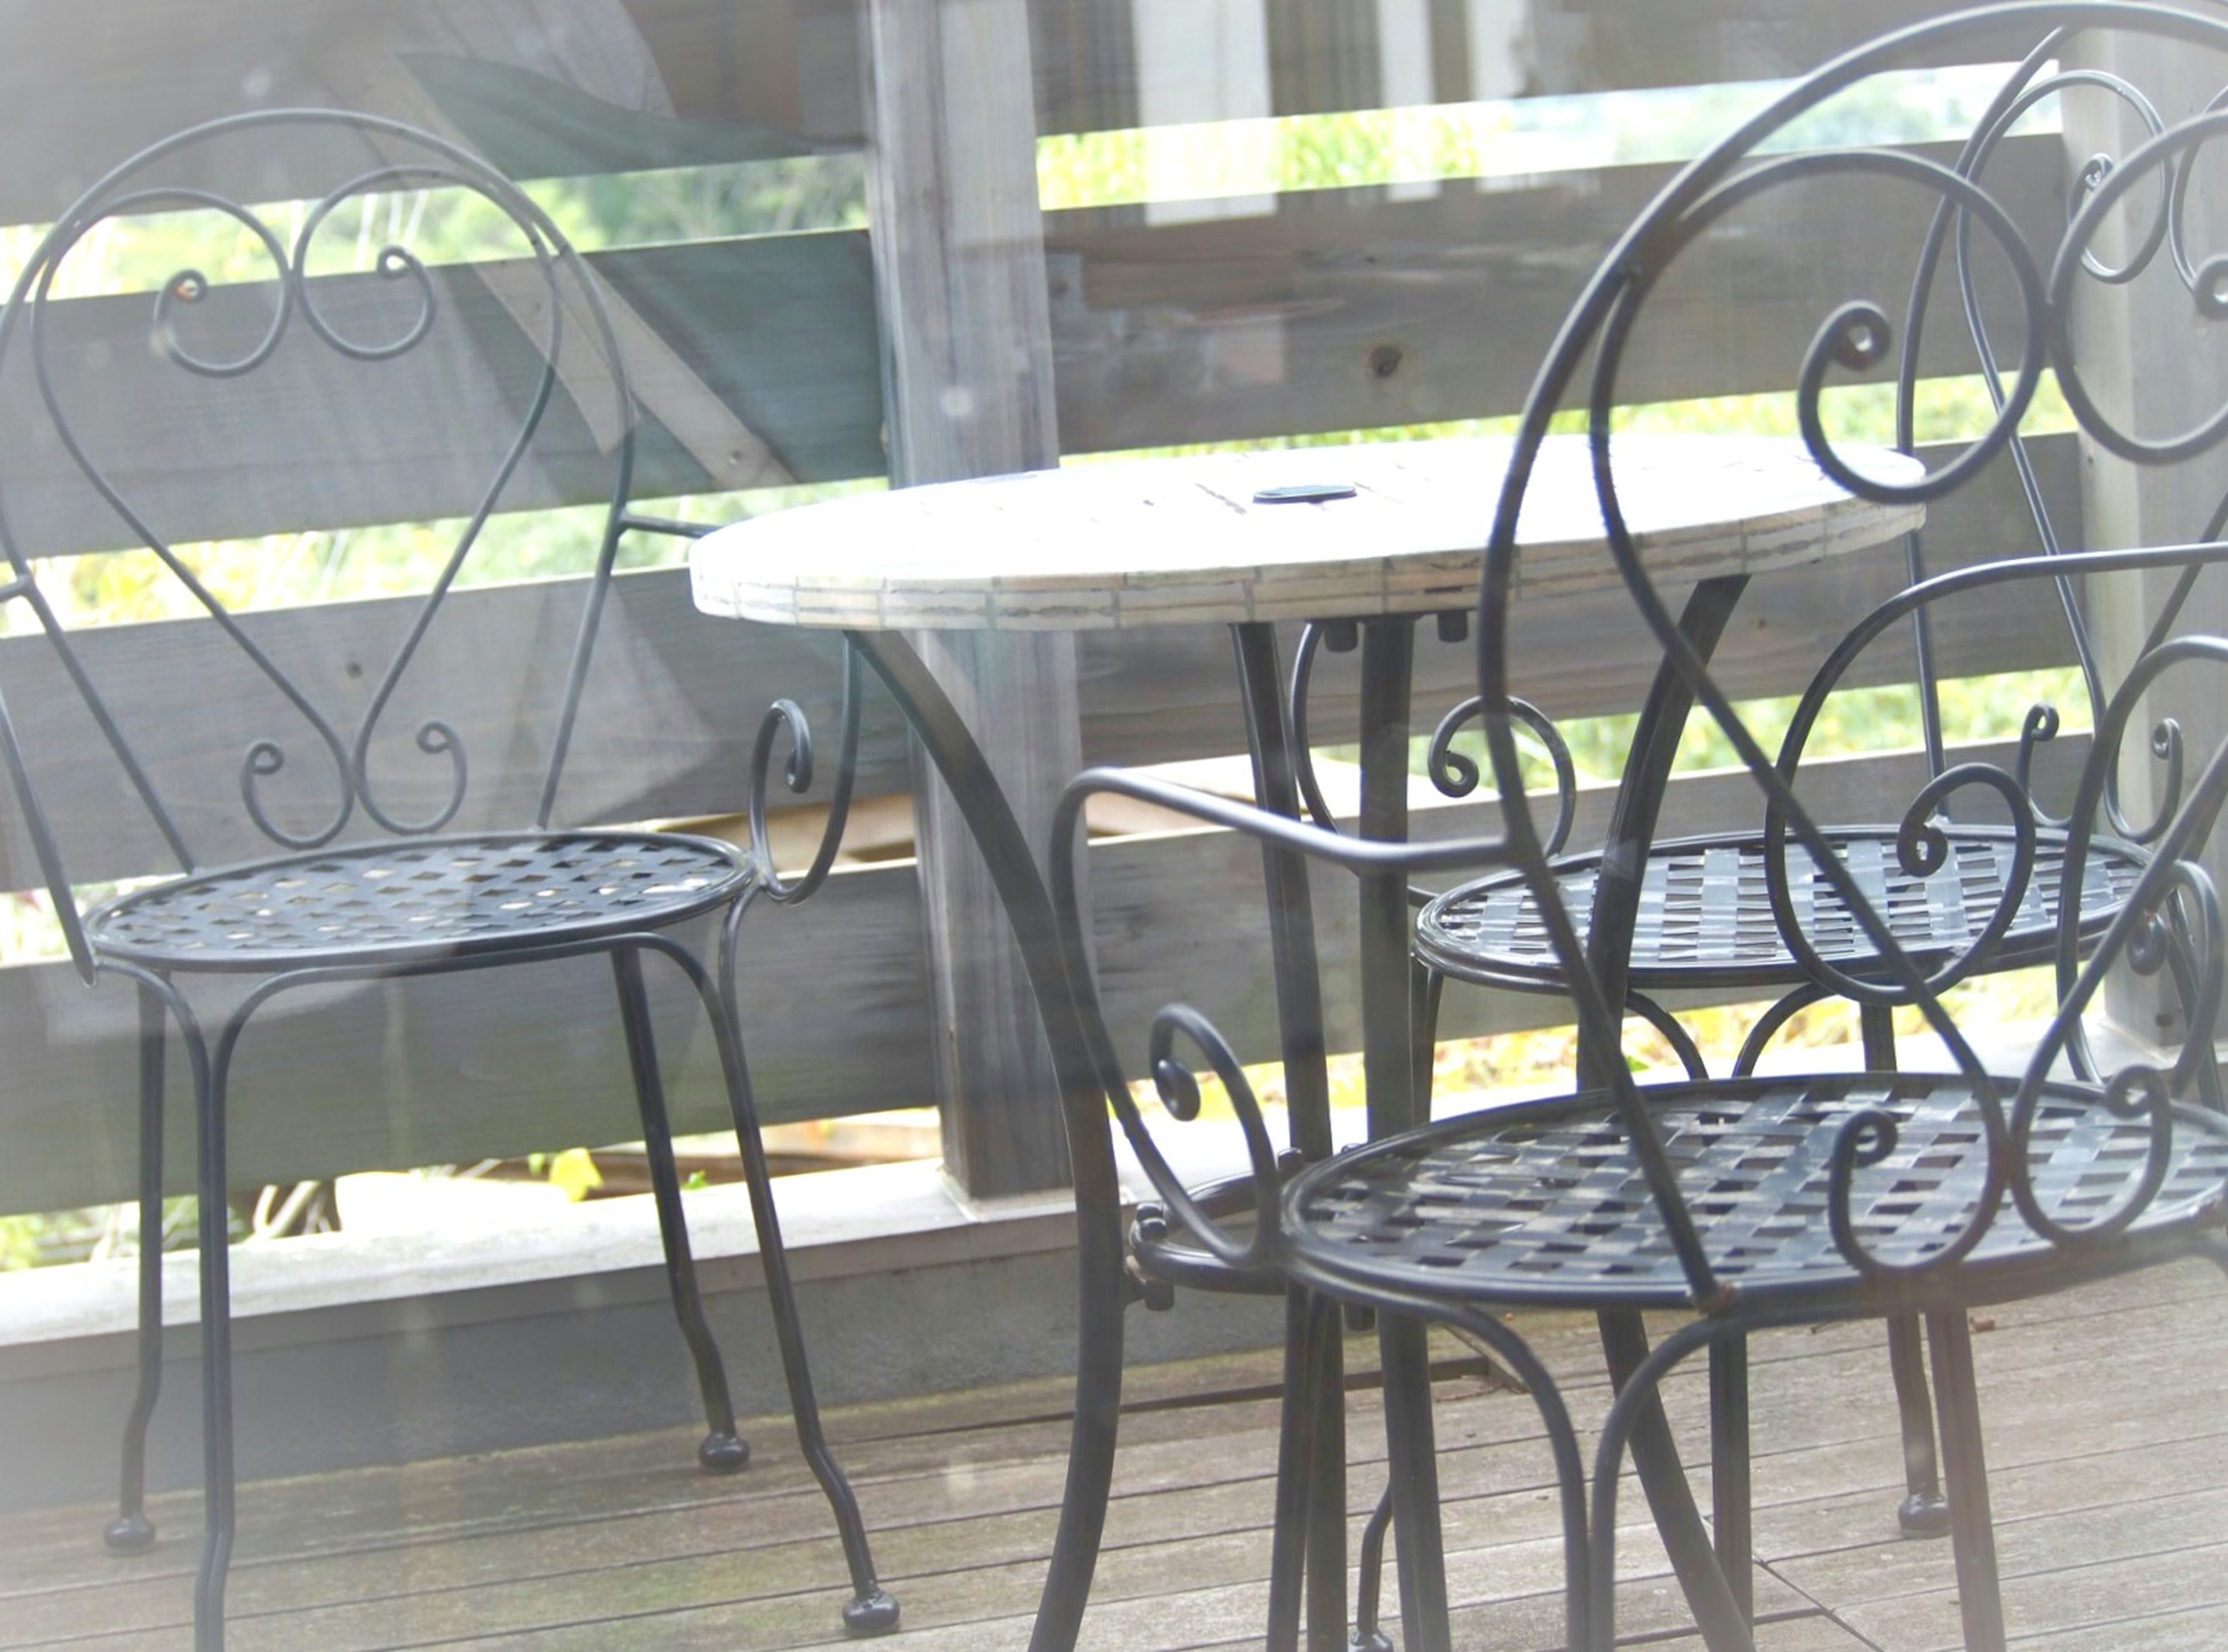 chair, empty, indoors, absence, seat, table, window, flooring, restaurant, in a row, group of objects, wrought iron, order, patio